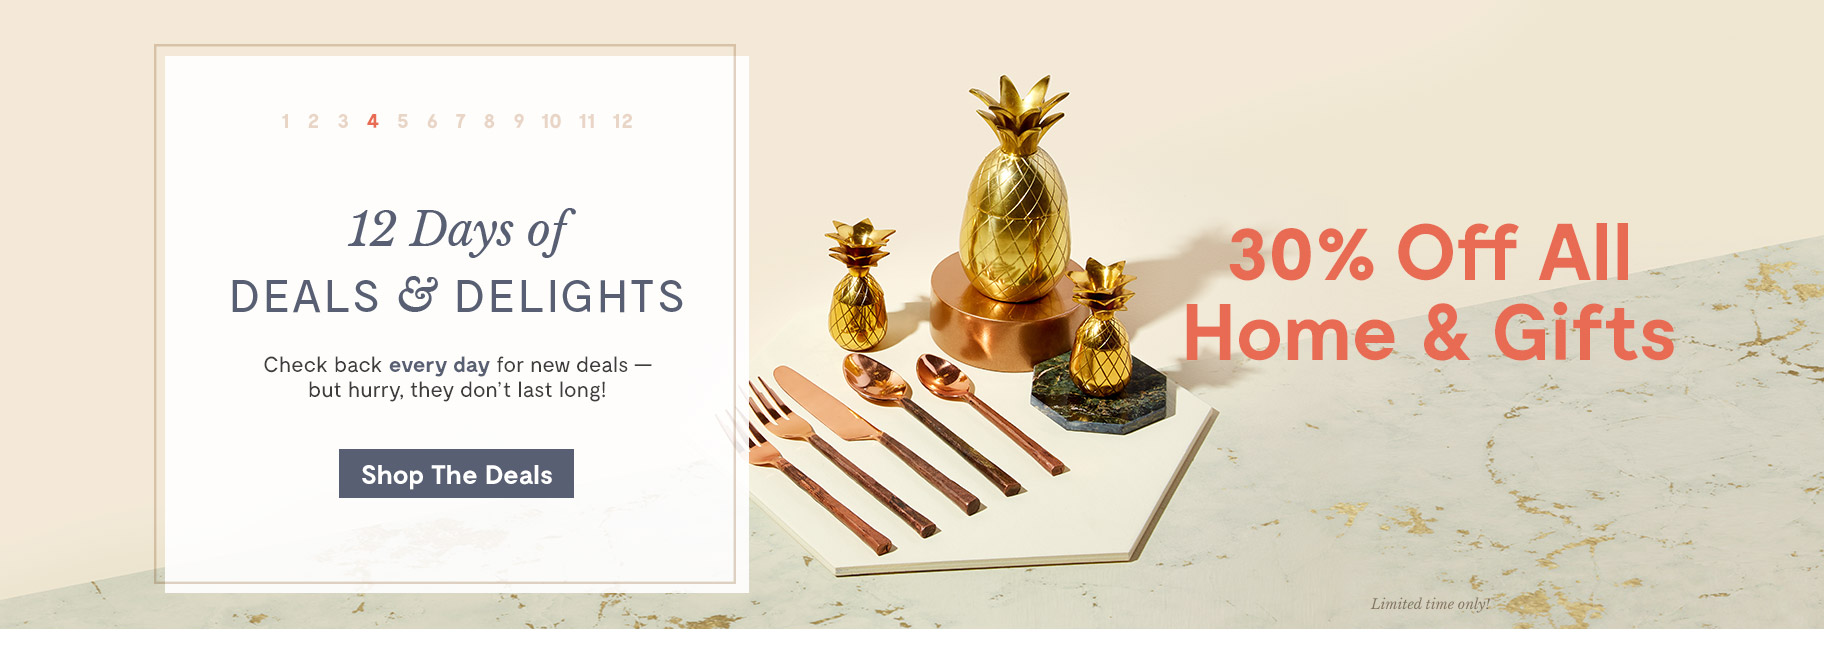 12 Days of Deals & Delights. Day 4 30% Off All Home & Gifts. Shop the Deals.